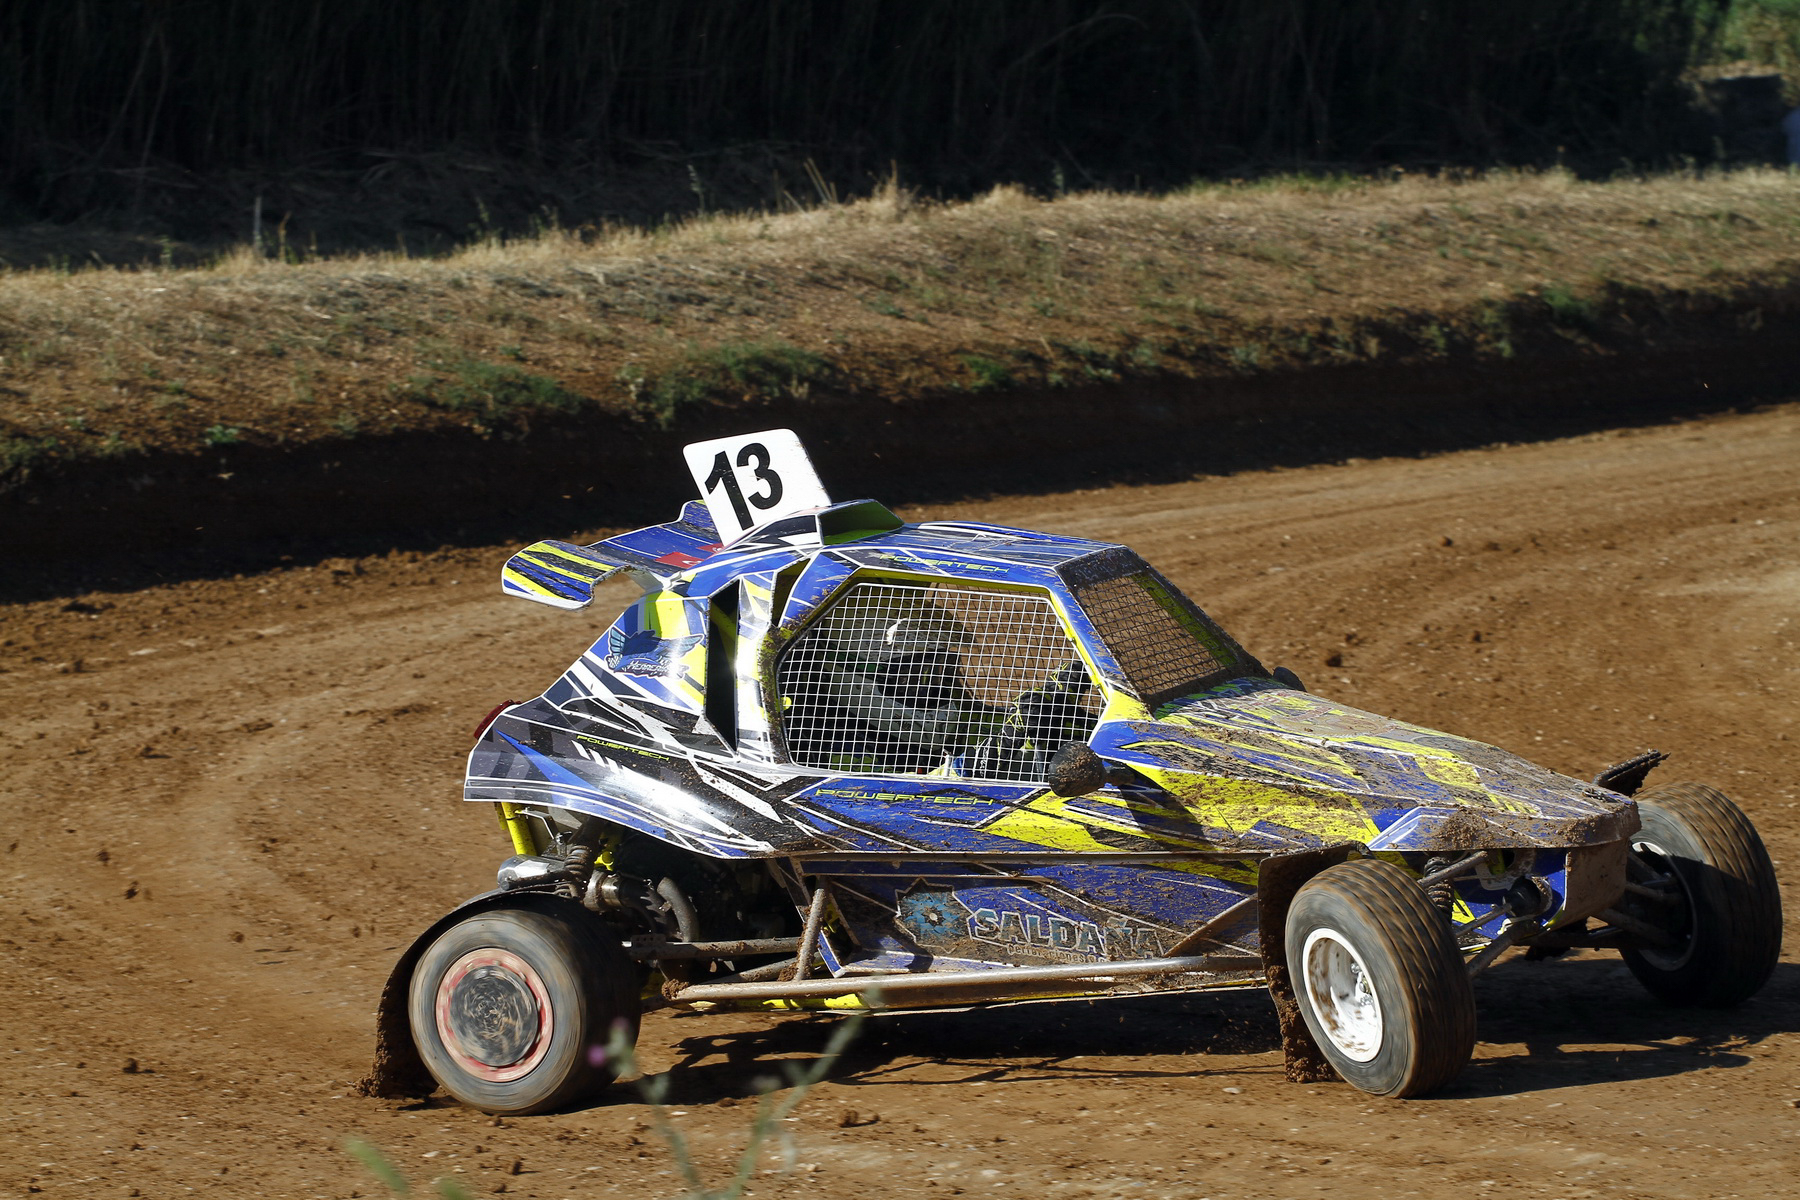 YacarRacing_AutocrossAraLleida2019_Final_AntonioHerrerias